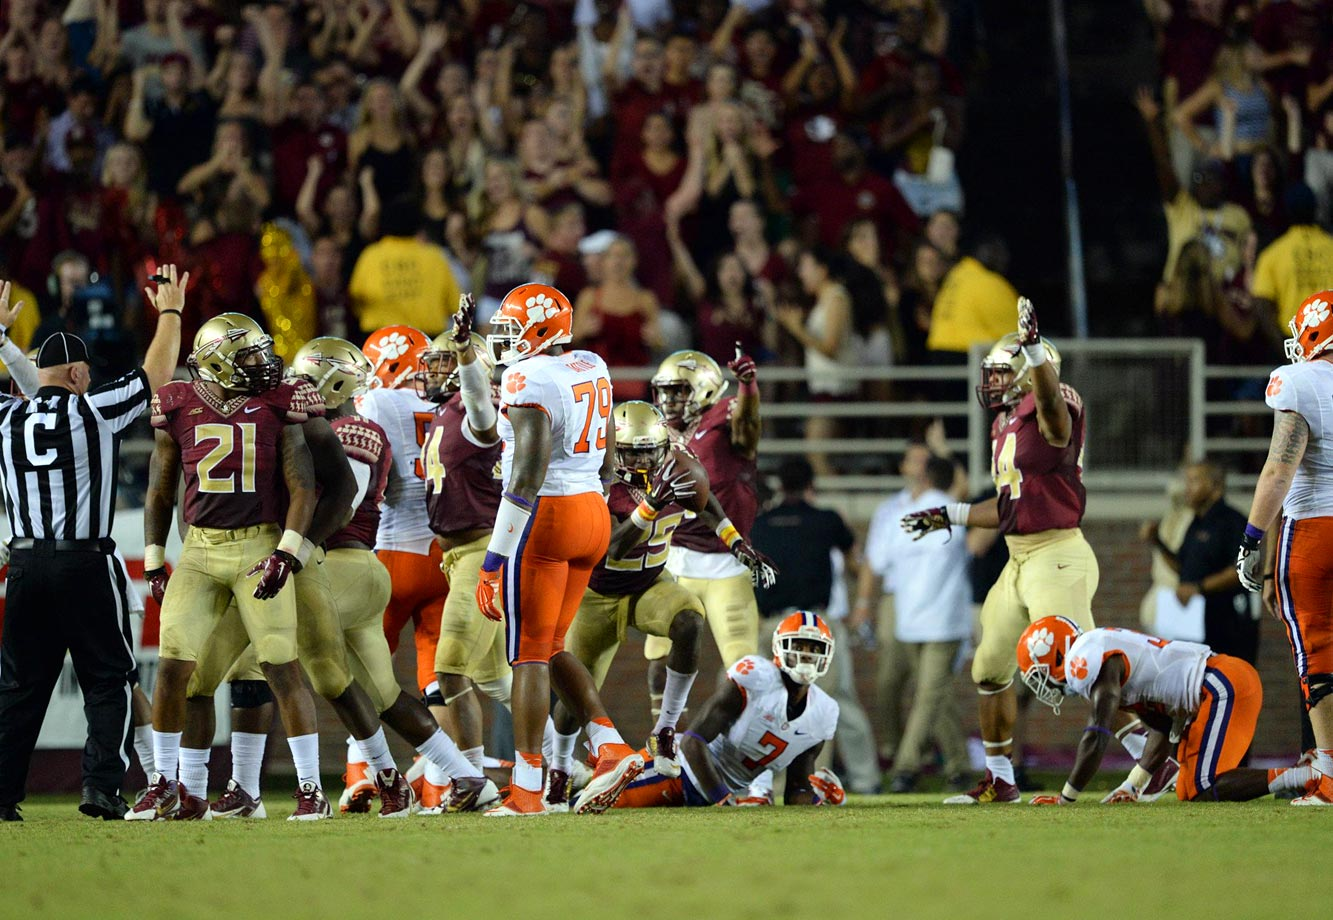 While Winston watched from the sideline as a suspension for yelling an obscene phrase on campus, the Seminoles survived to overtime by forcing a C.J. Davidson fumble at the 14-yard line with under two minutes remaining. Florida State's defense came up clutch again in overtime, stuffing Clemson on fourth-and-one before Karlos Williams sealed the win with a 12-yard touchdown run.